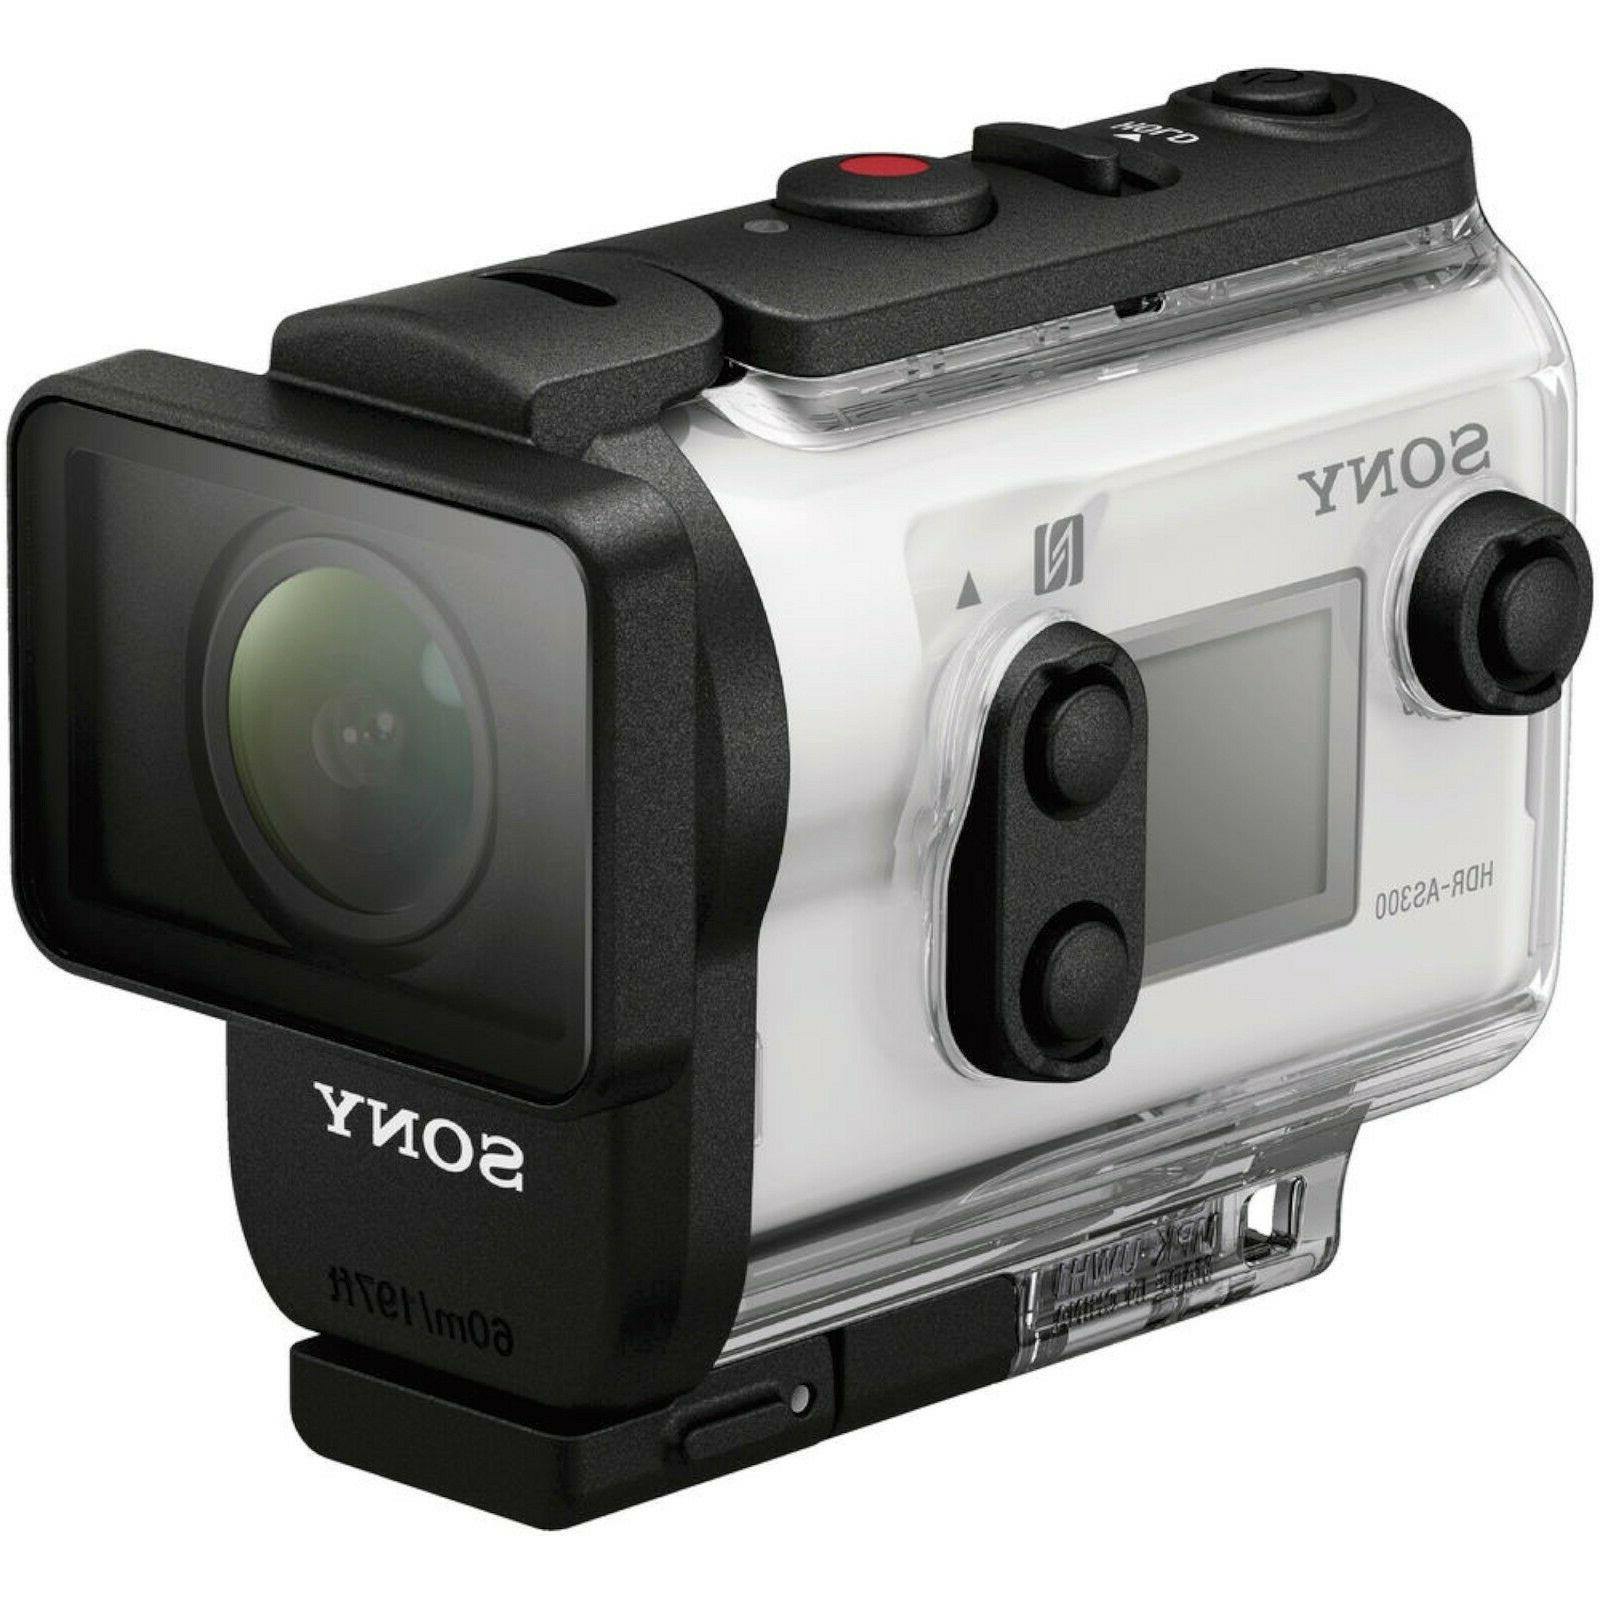 NEW Sony Action Cam HDR-AS300 Wi-Fi HD Waterproof Video Came